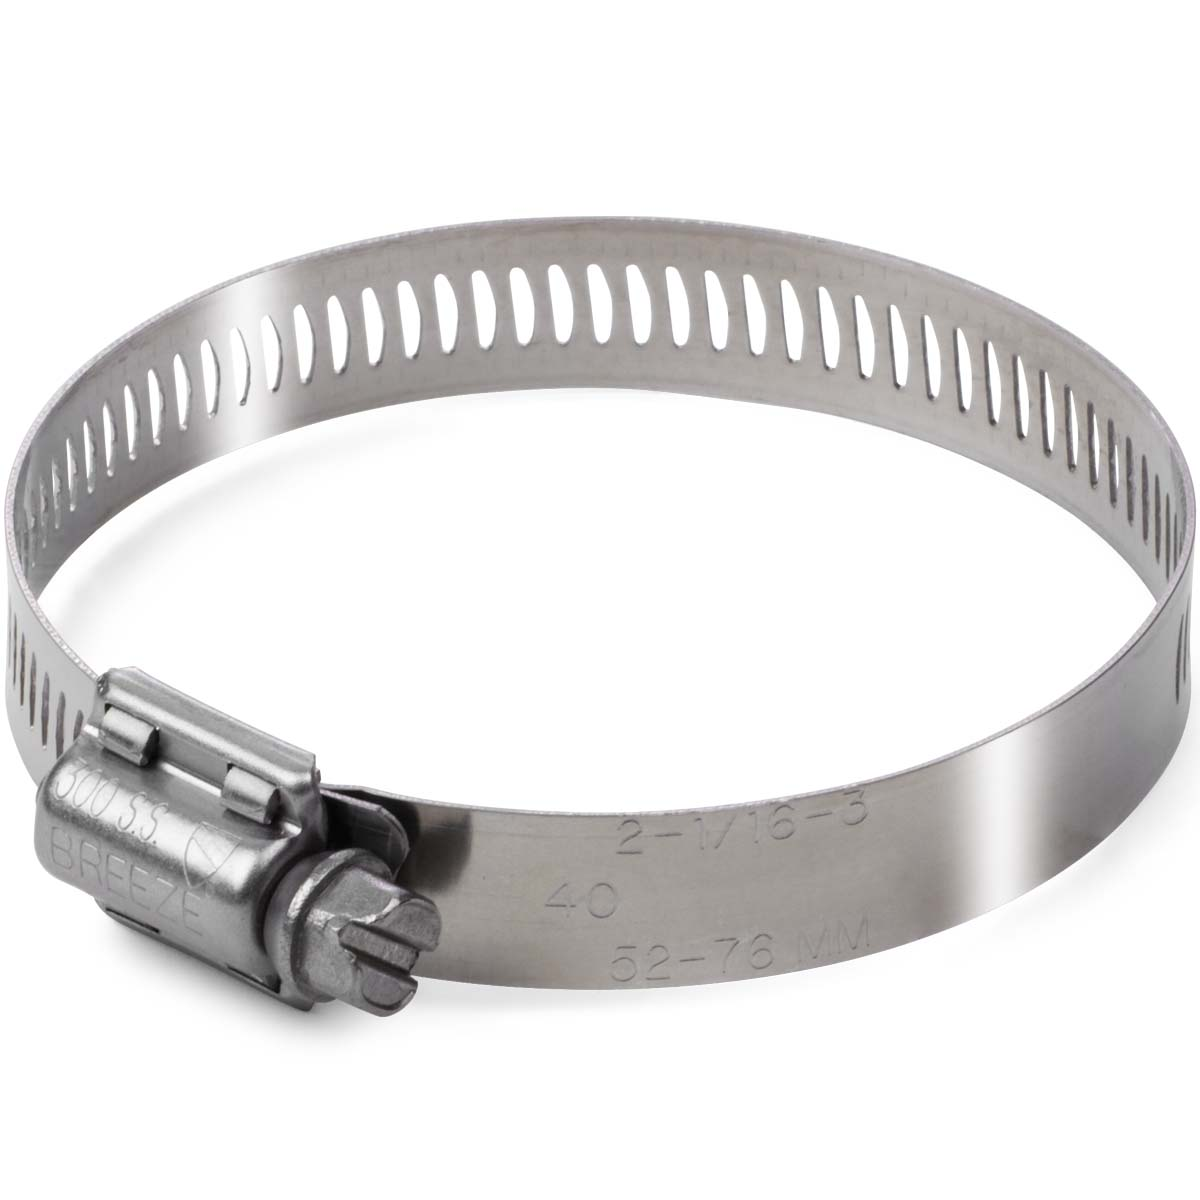 #16 Heavy-Duty Stainless Steel Hose Cl&  sc 1 st  Kimball Midwest & 16 Heavy-Duty Stainless Steel Hose Clamp - Kimball Midwest